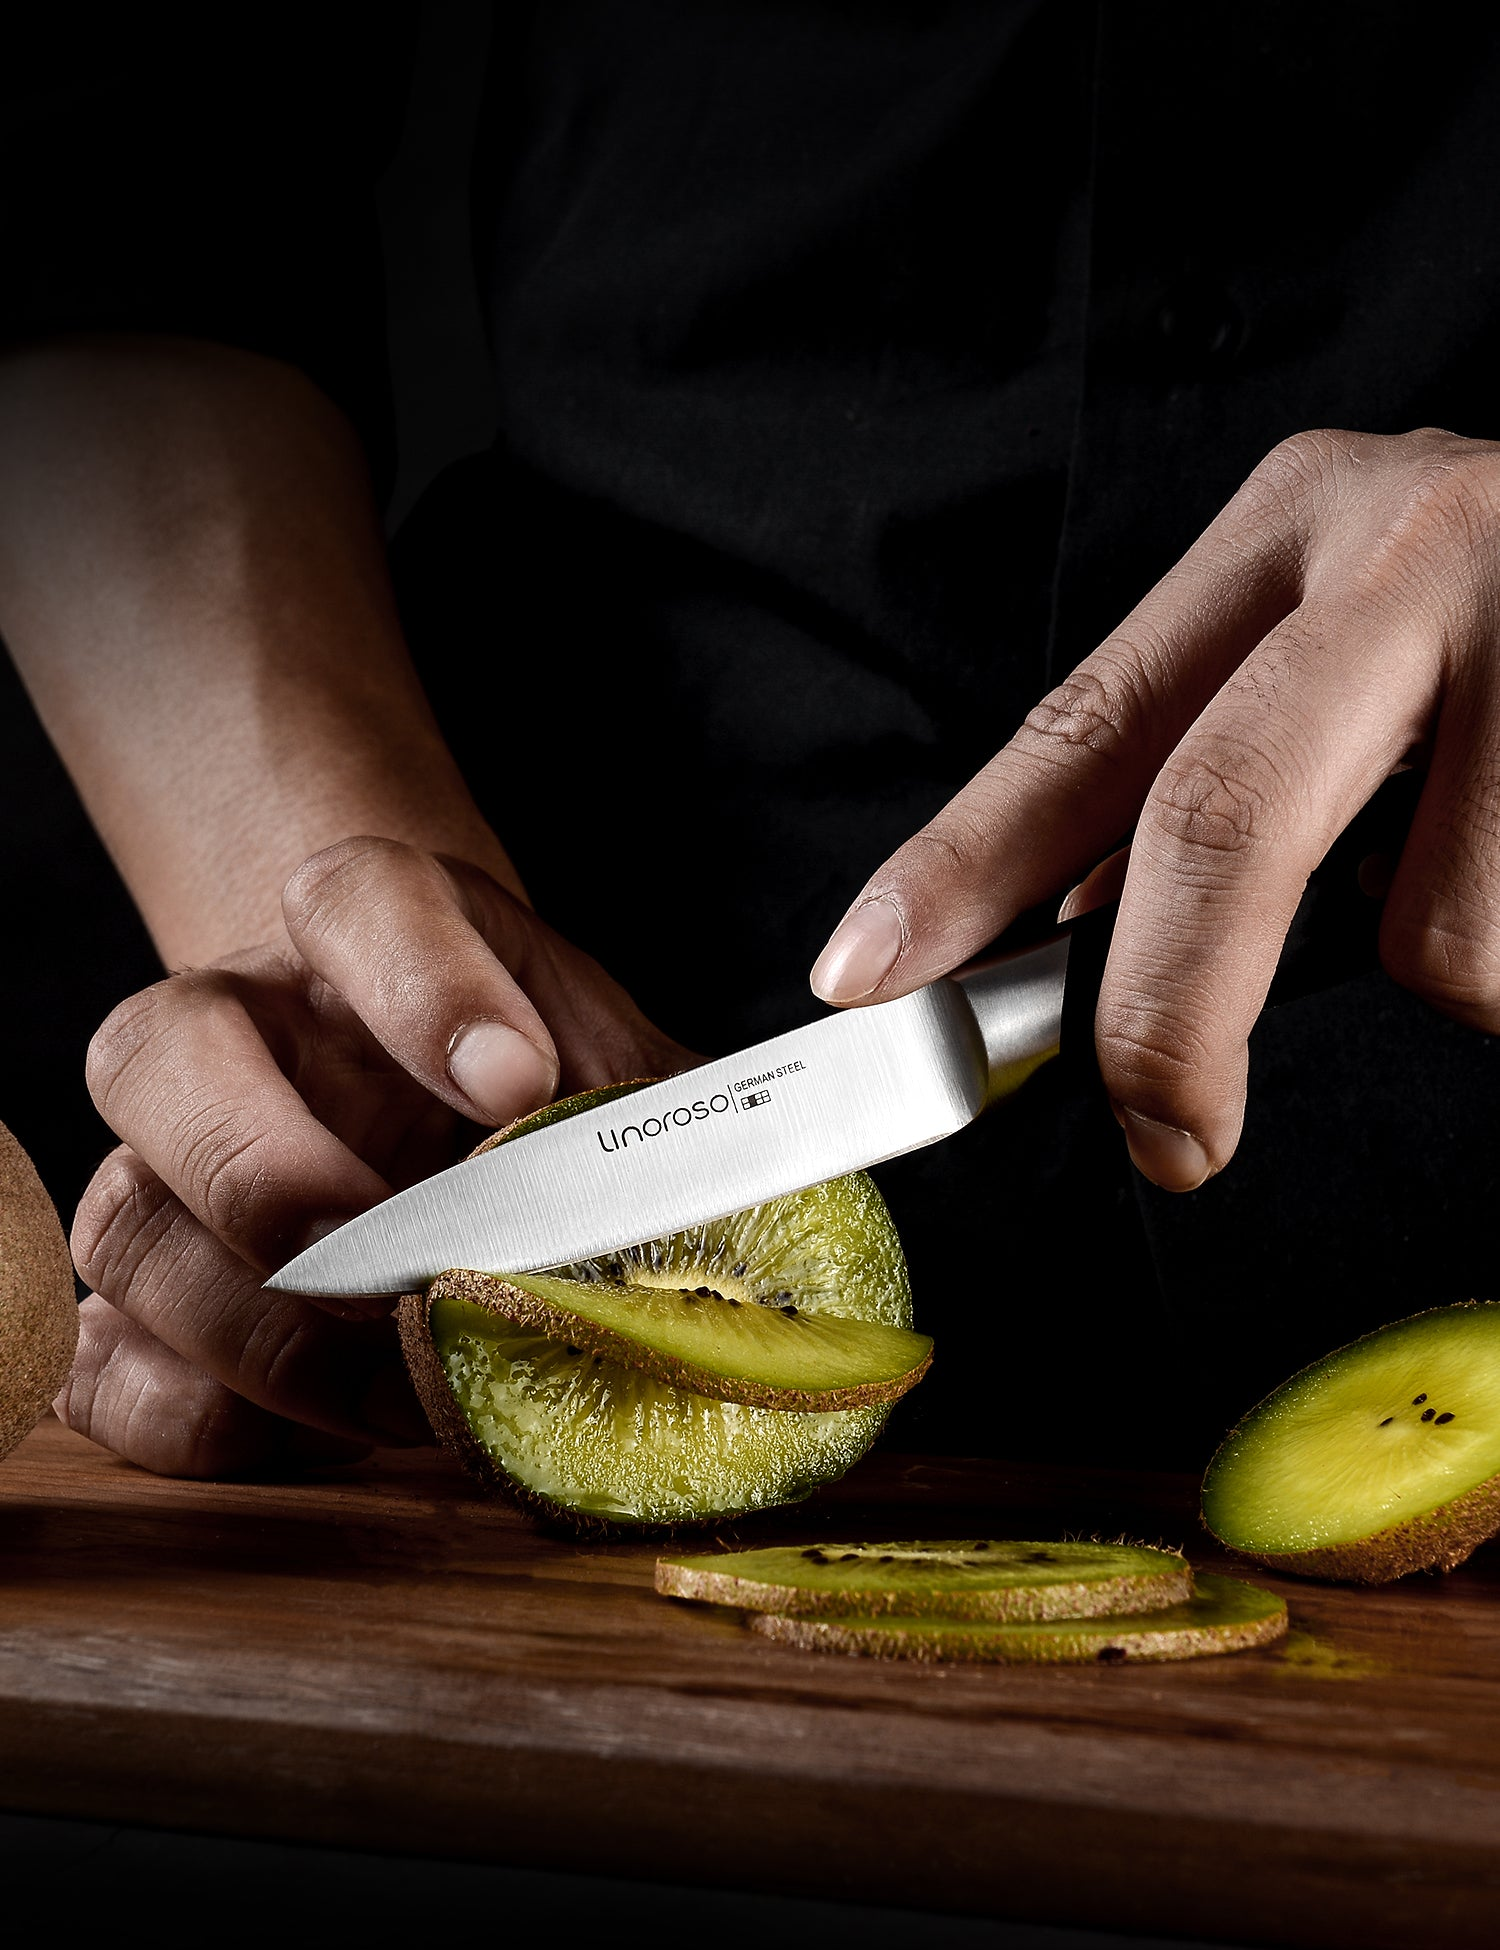 Linoroso Classic 3.5 inch Paring Knife